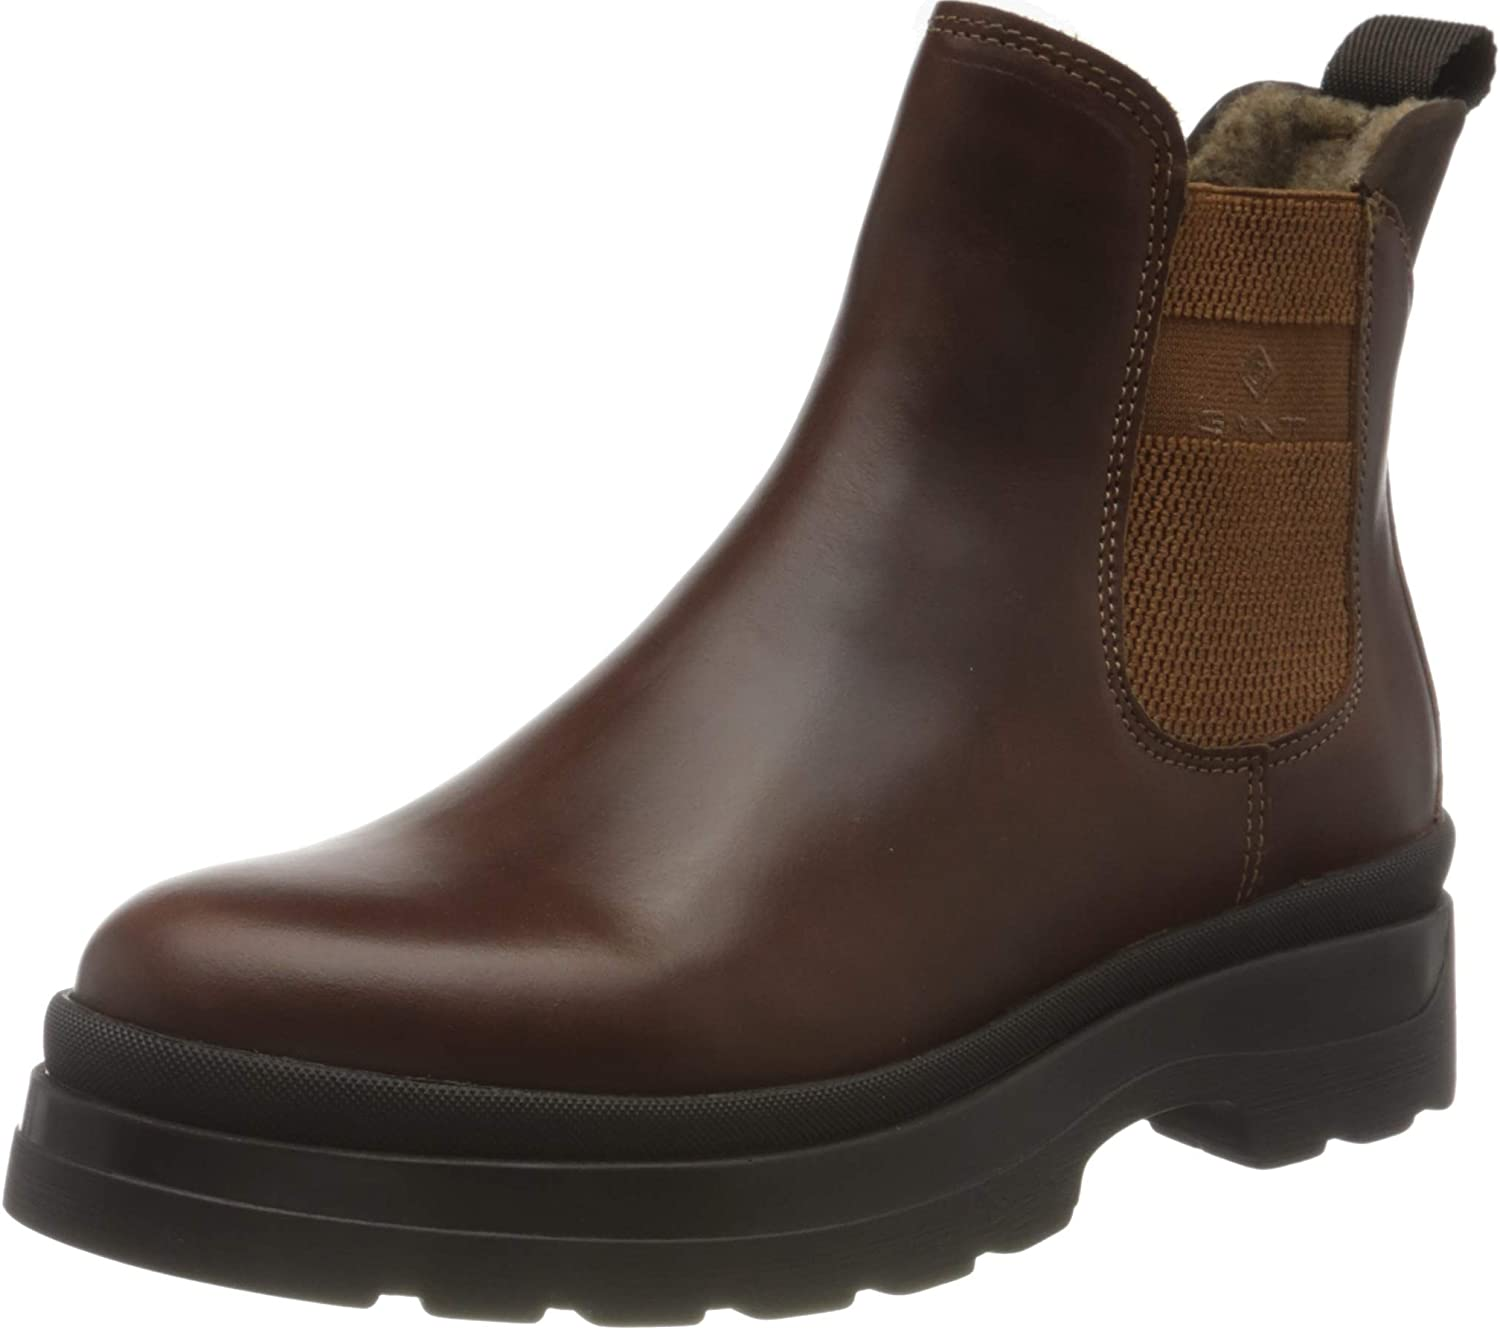 GANT Women's Chelsea Boot Direct store s size asia us-0 Quality inspection